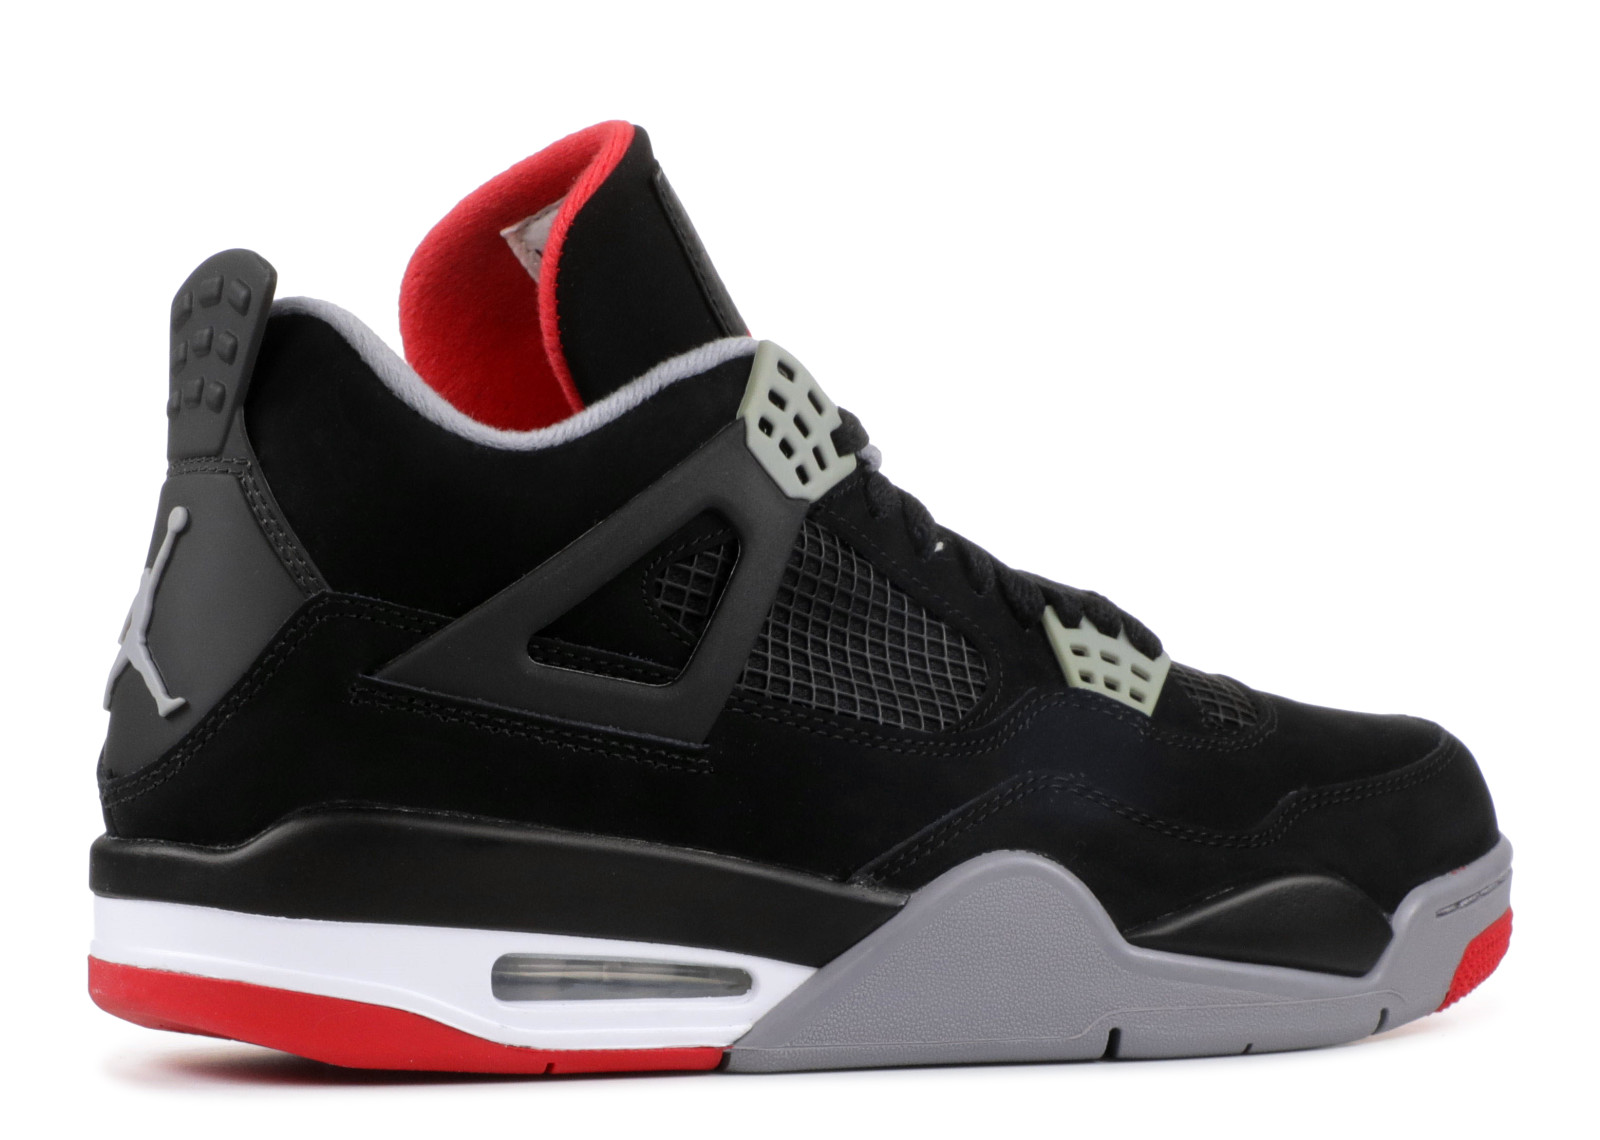 quality design cc4f3 27a9a As the years passed it just became increasingly grim that we would never  see a proper retro of this shoe again, that was until 2016. For 2016 Jordan  Brand ...